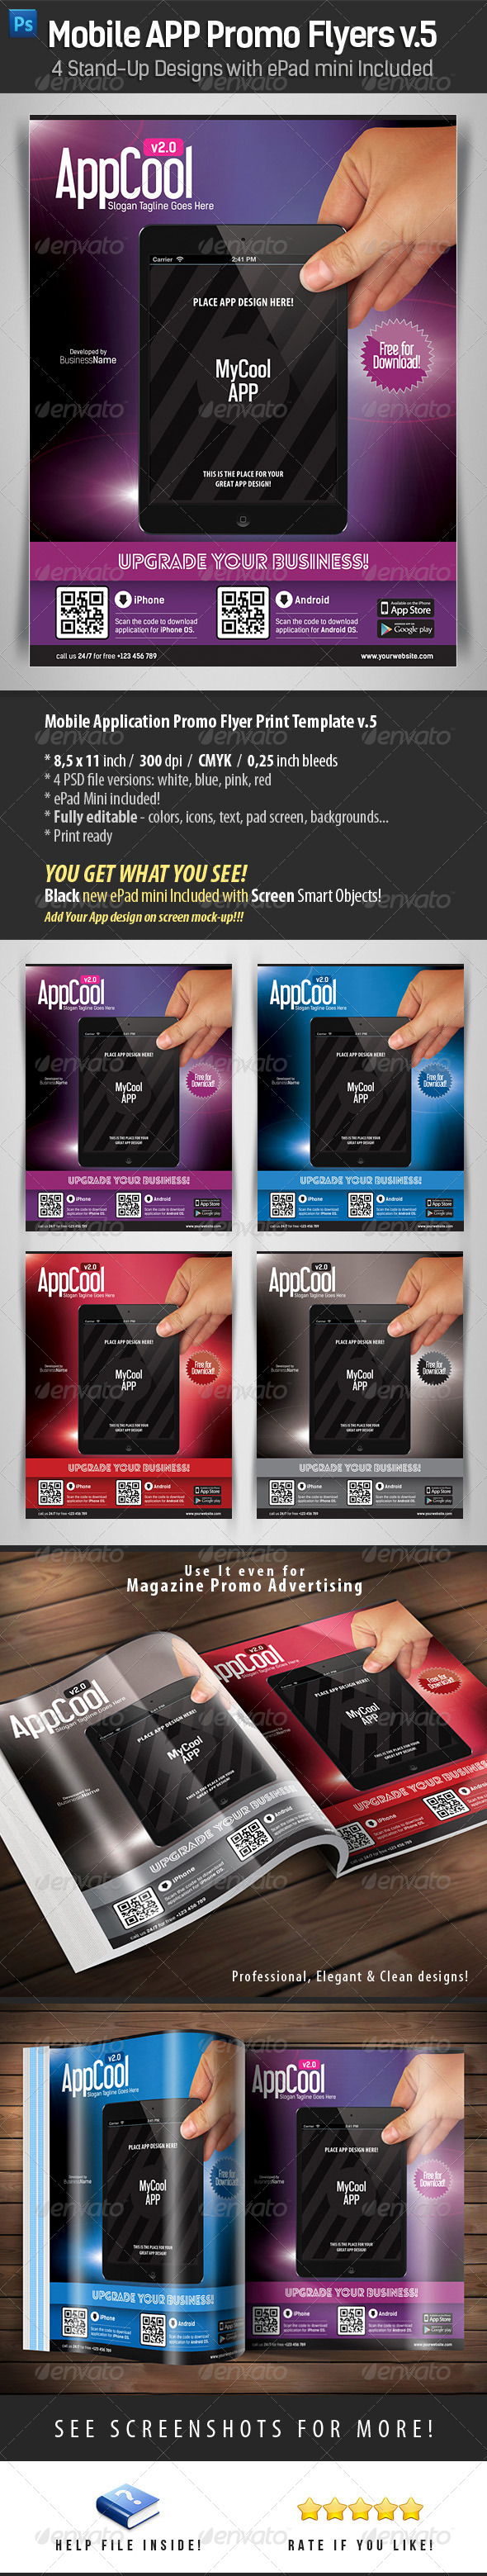 Mobile App Flyers Template v.5 - Flyers Print Templates